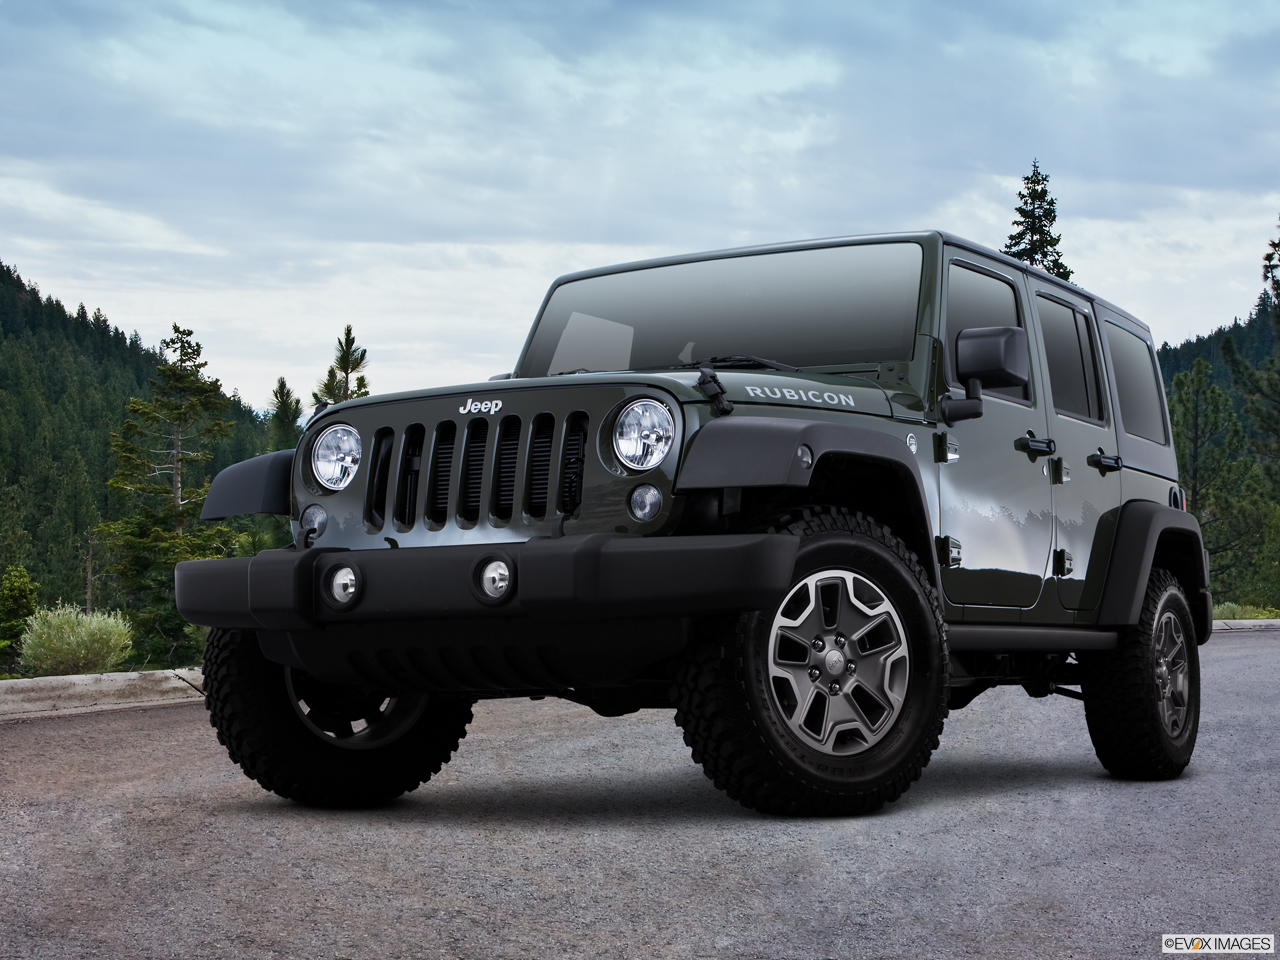 Exterior View Of 2016 Jeep Wrangler Unlimited in San Bernardino